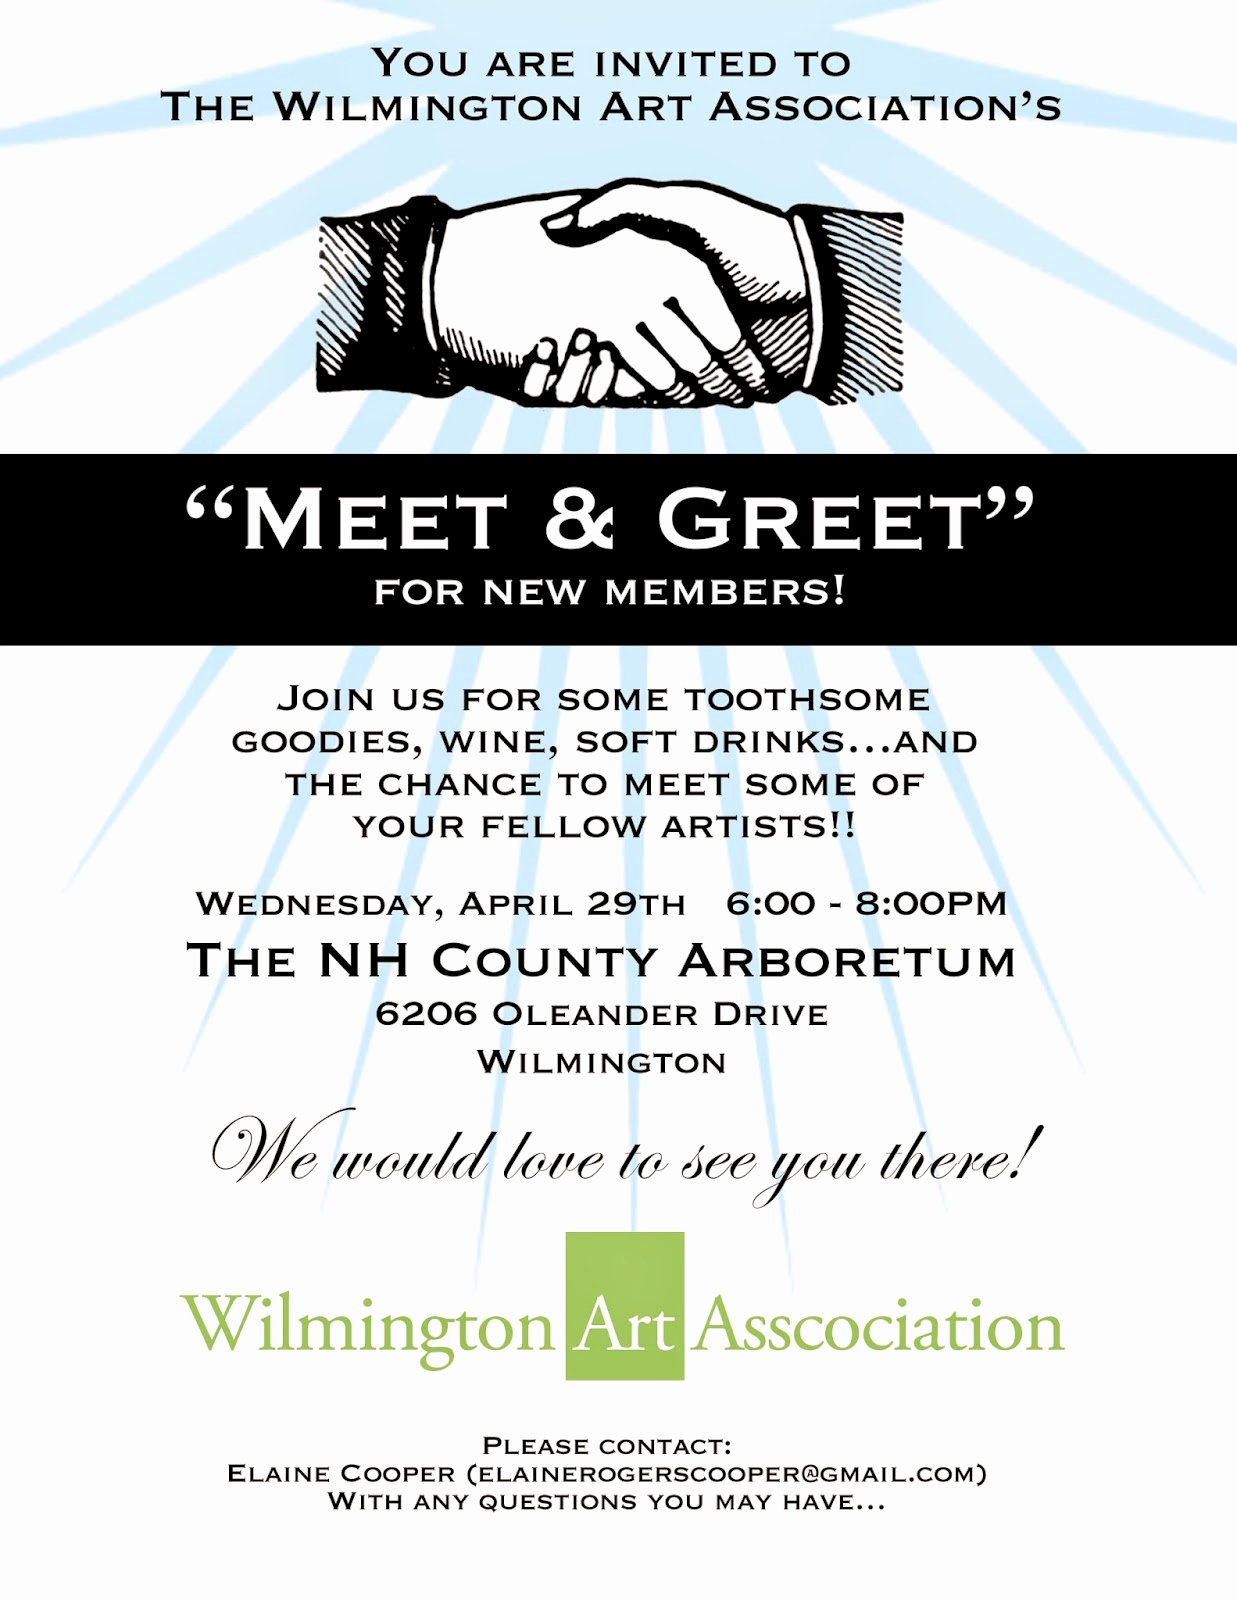 Meet and Greet Invitation Wording Beautiful Wilmington Art association Eblast Meet and Greet Invitation